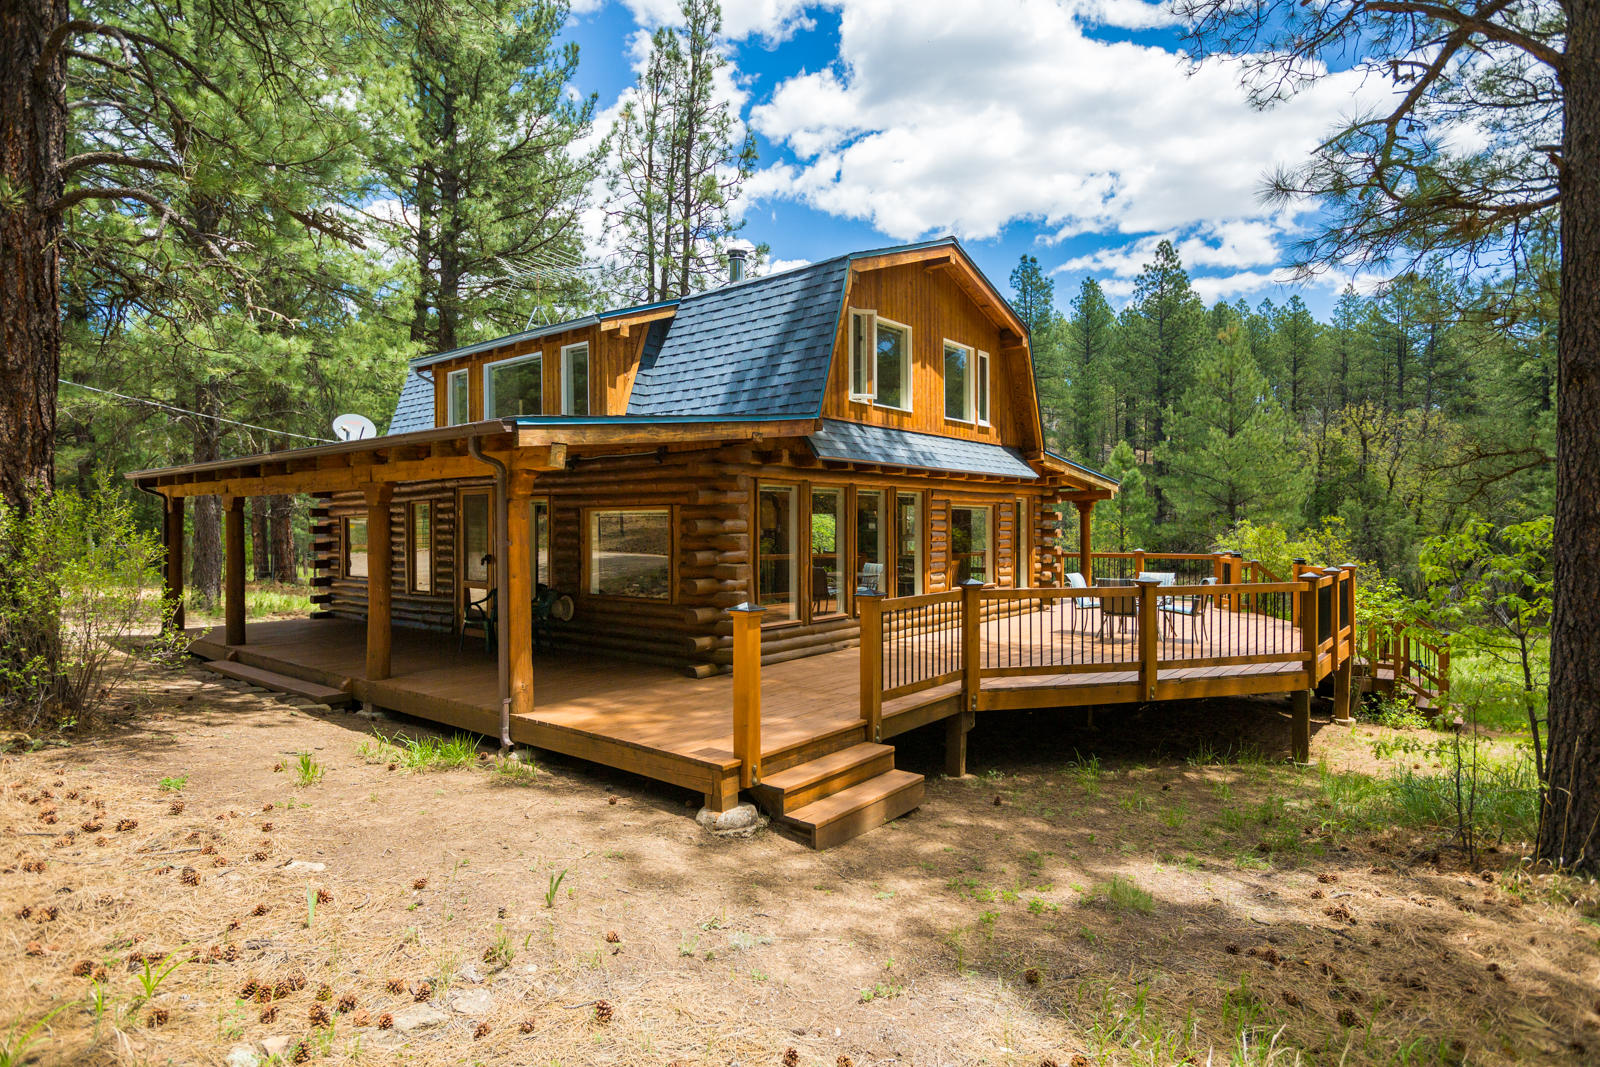 Step into this enchanted handcrafted Log Home with guest cabin! Rare once in lifetime offering. Breath in pine scented air. Hear the crow caw high above the canyon. Original owner & creator.  One of a kind, private sanctuary set amidst 11 acres of 'end of the road' solitude bordered by thousands of acres of National Forest in 4th of July Canyon, Manzano Mountains. A creek runs thru this lush getaway featuring a hand crafted, meticulously designed and maintained 3 bed Log Cabin Home, lovely Guest Cabin, restive front porch overlooking the creek plus a serious Workshop, heated & A/C. This could be your full time home or weekend retreat getaway; 1 hr 15 min from Big I of ABQ. Work from home; Hi Speed Internet. Scenic hiking, wildlife and natural beauty abound. Open Sunday 5/24 by appointment